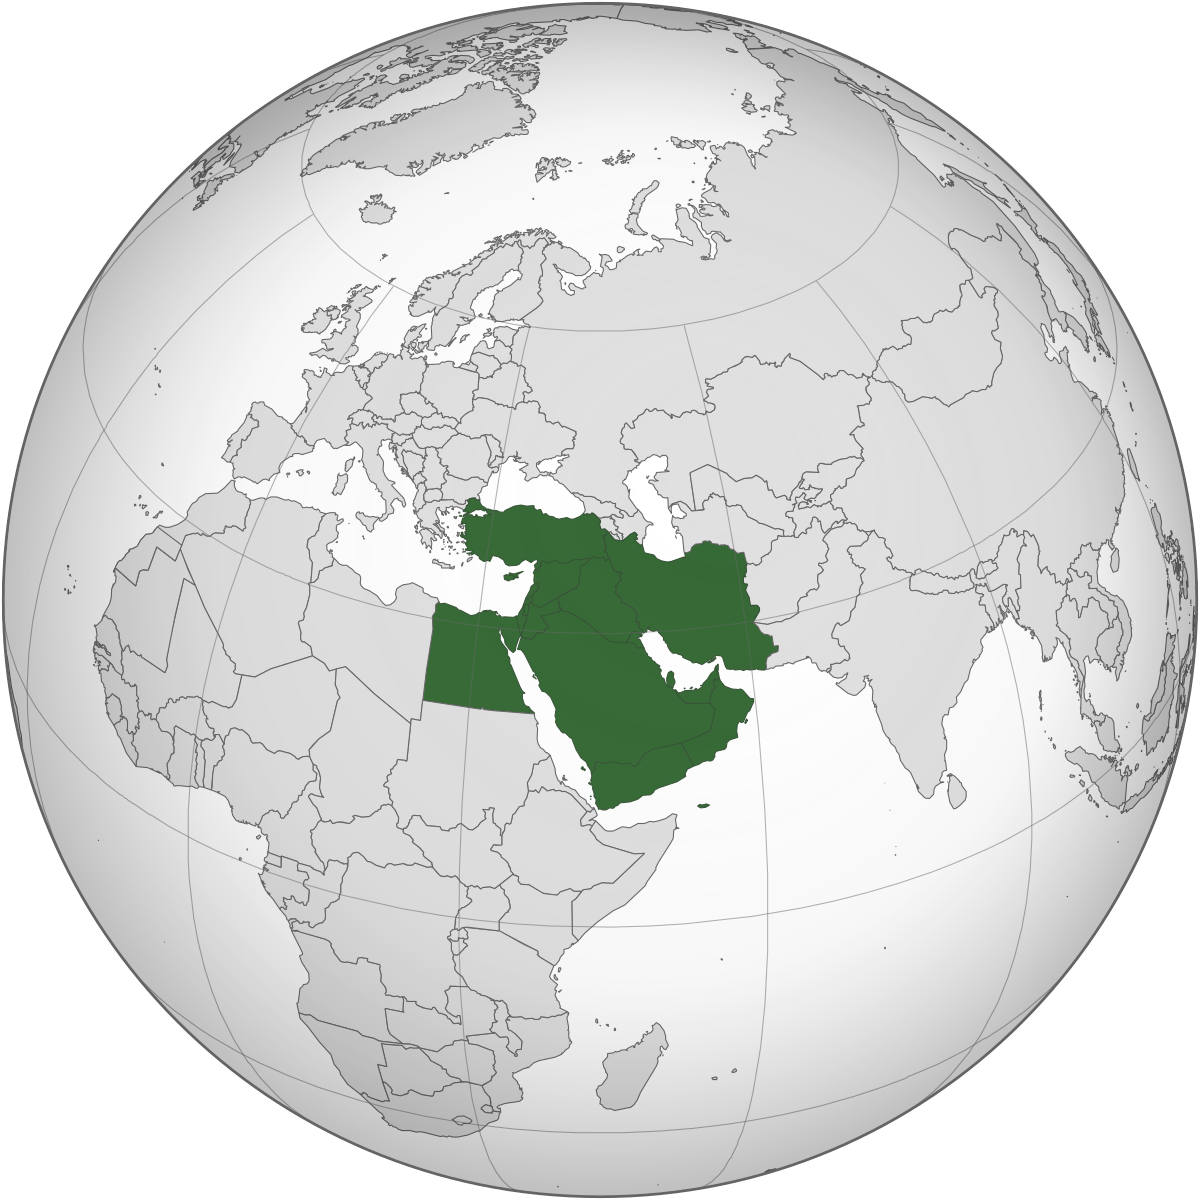 an-anchor-of-stability-in-arab-world-and-middle-east-in-current-strategic-game